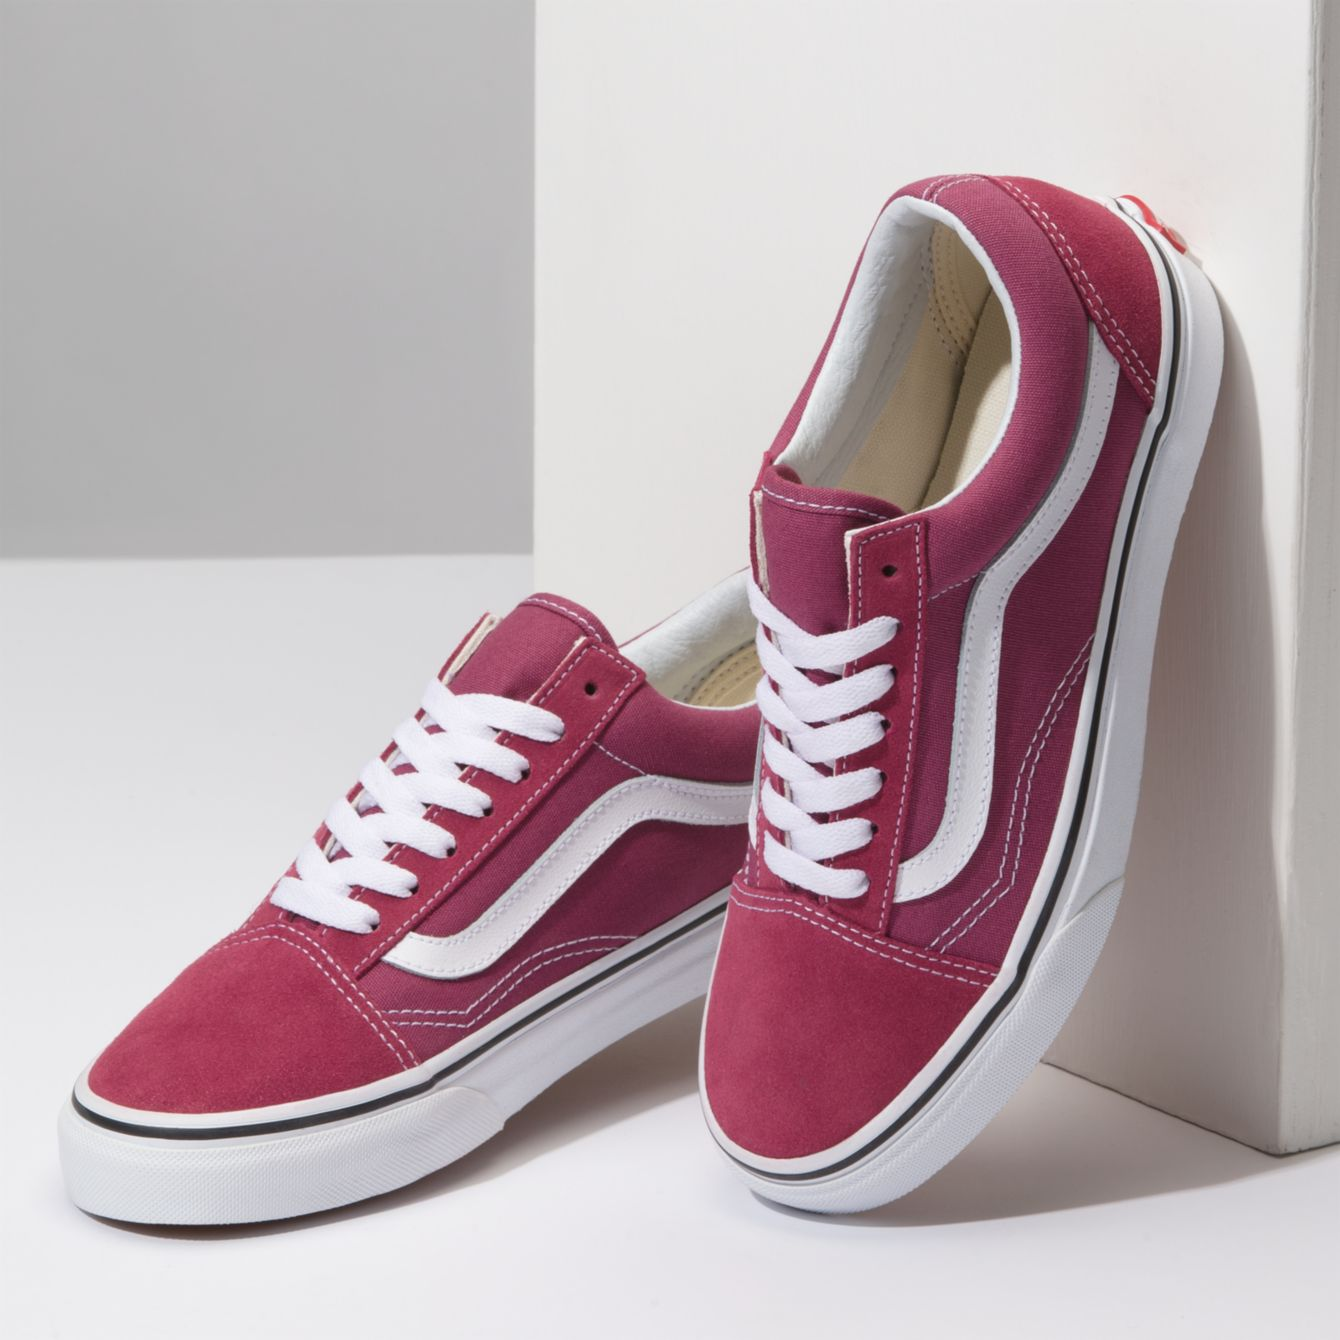 17f581729c9c47 Vans Old Skool Dry Rose True White